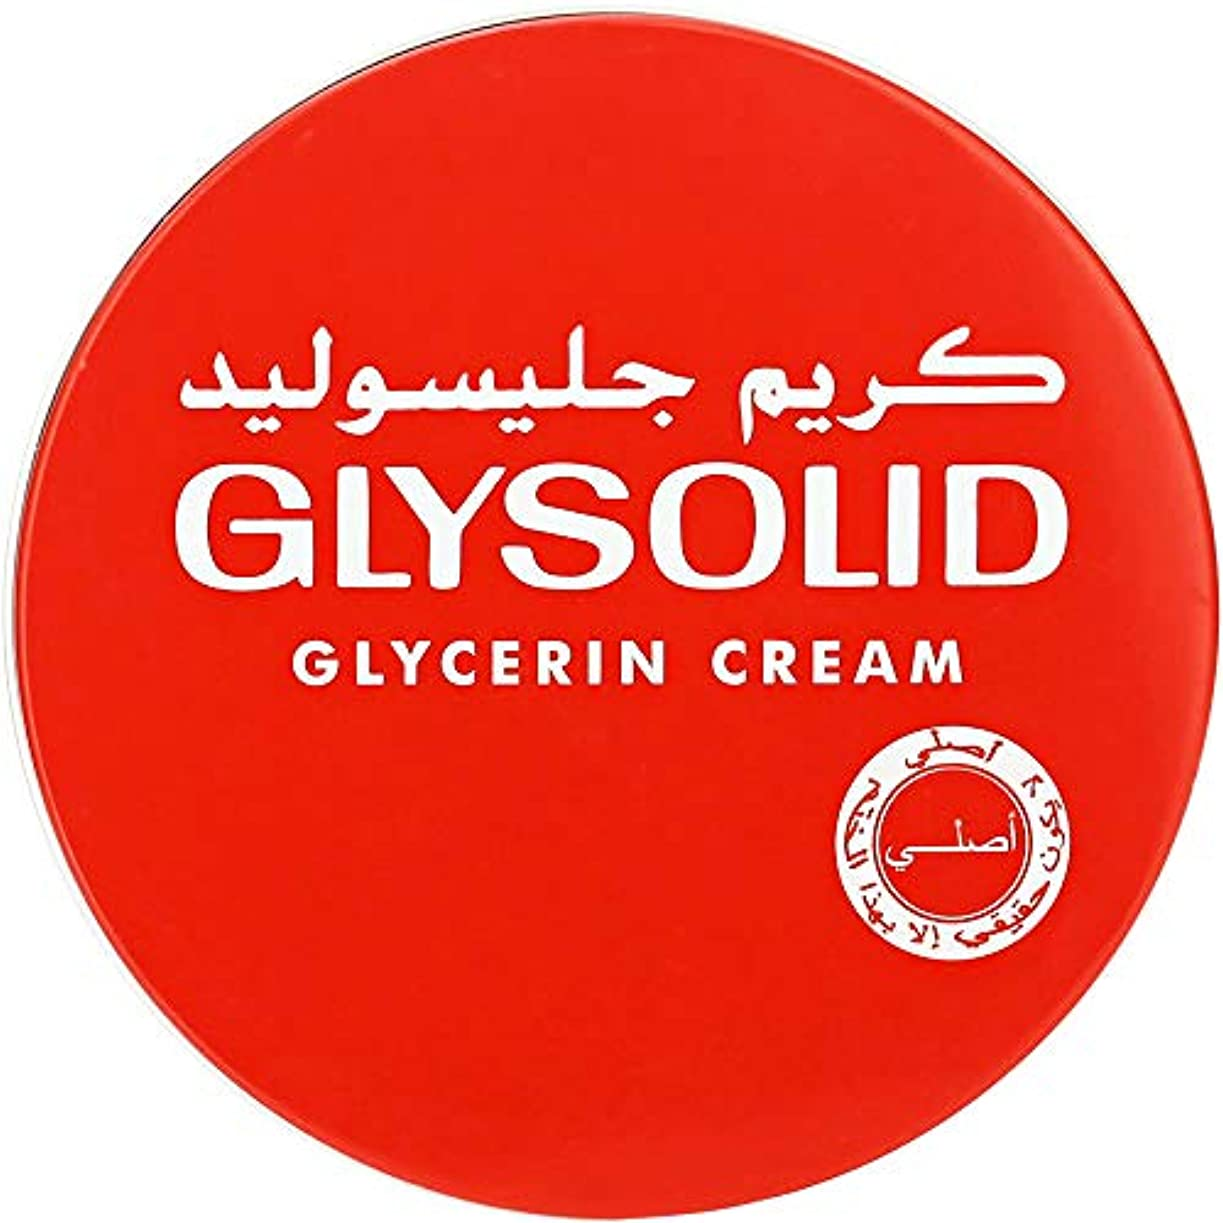 スティーブンソン開業医オークランドGlysolid Cream Face Moisturizers For Dry Skin Hands Feet Elbow Body Softening With Glycerin Keeping Your Skin Soft Healthy And Smooth (250 ml)